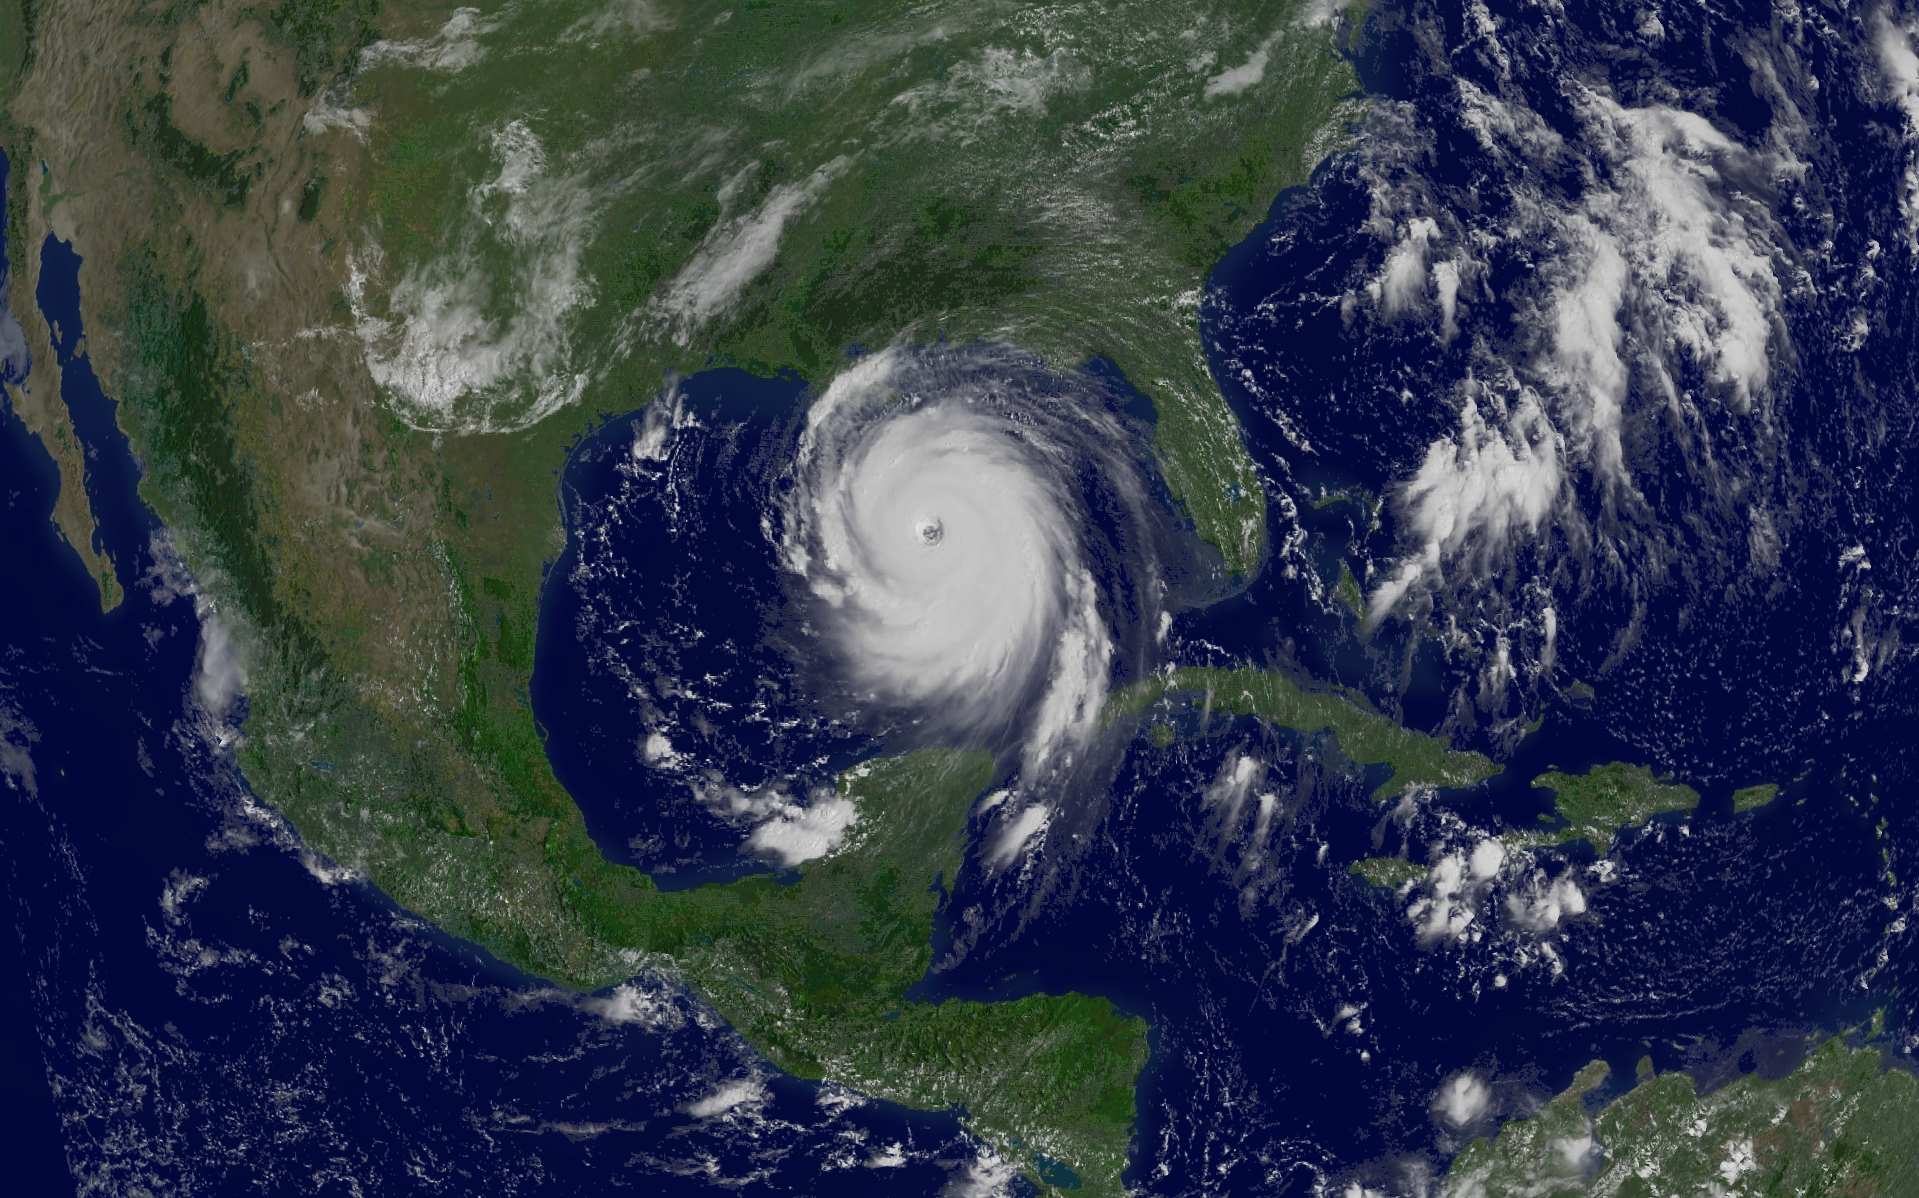 APOD: 2005 August 29 - Hurricane Katrina in the Gulf of Mexico